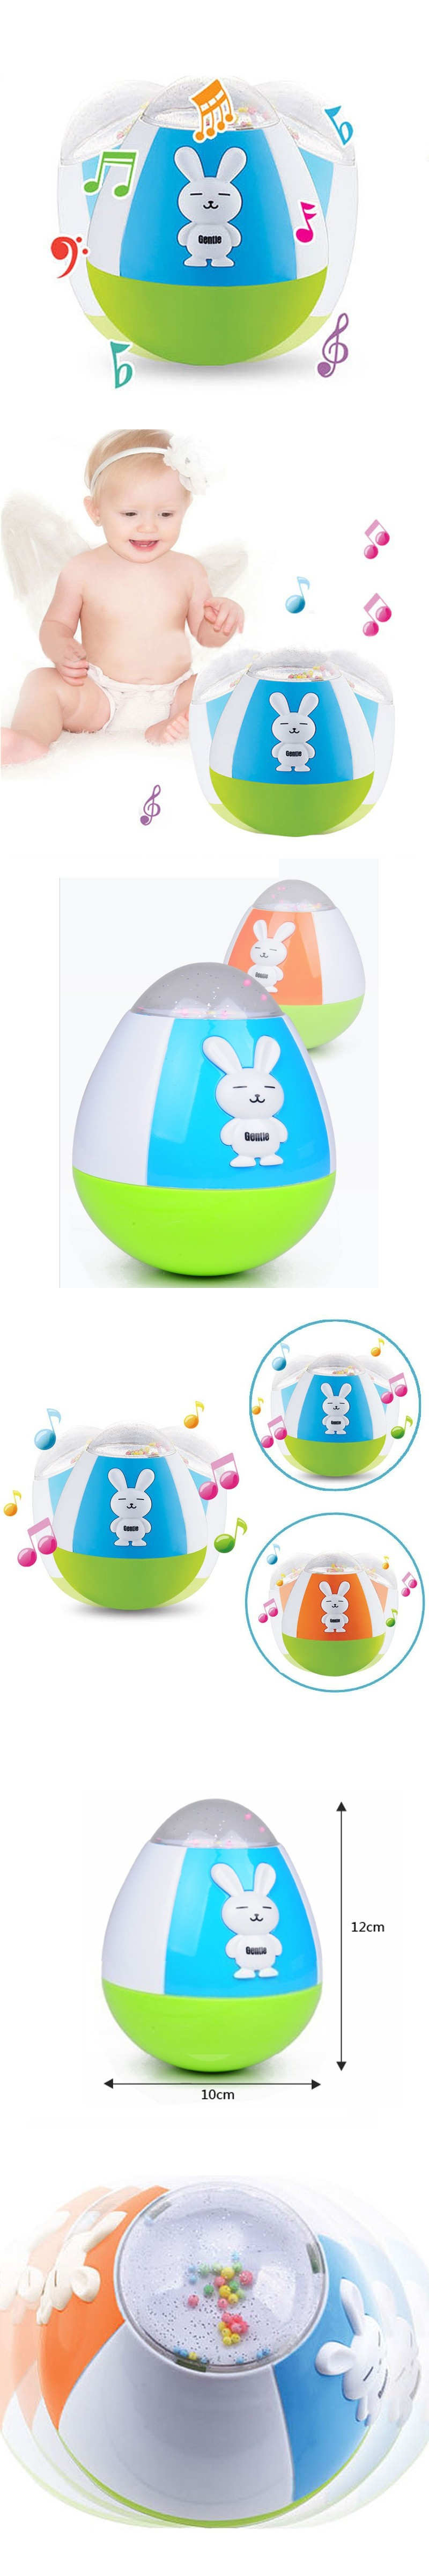 Baby Tumbler Toy Musical Rabbit Doll Nodding Roly Poly Sound